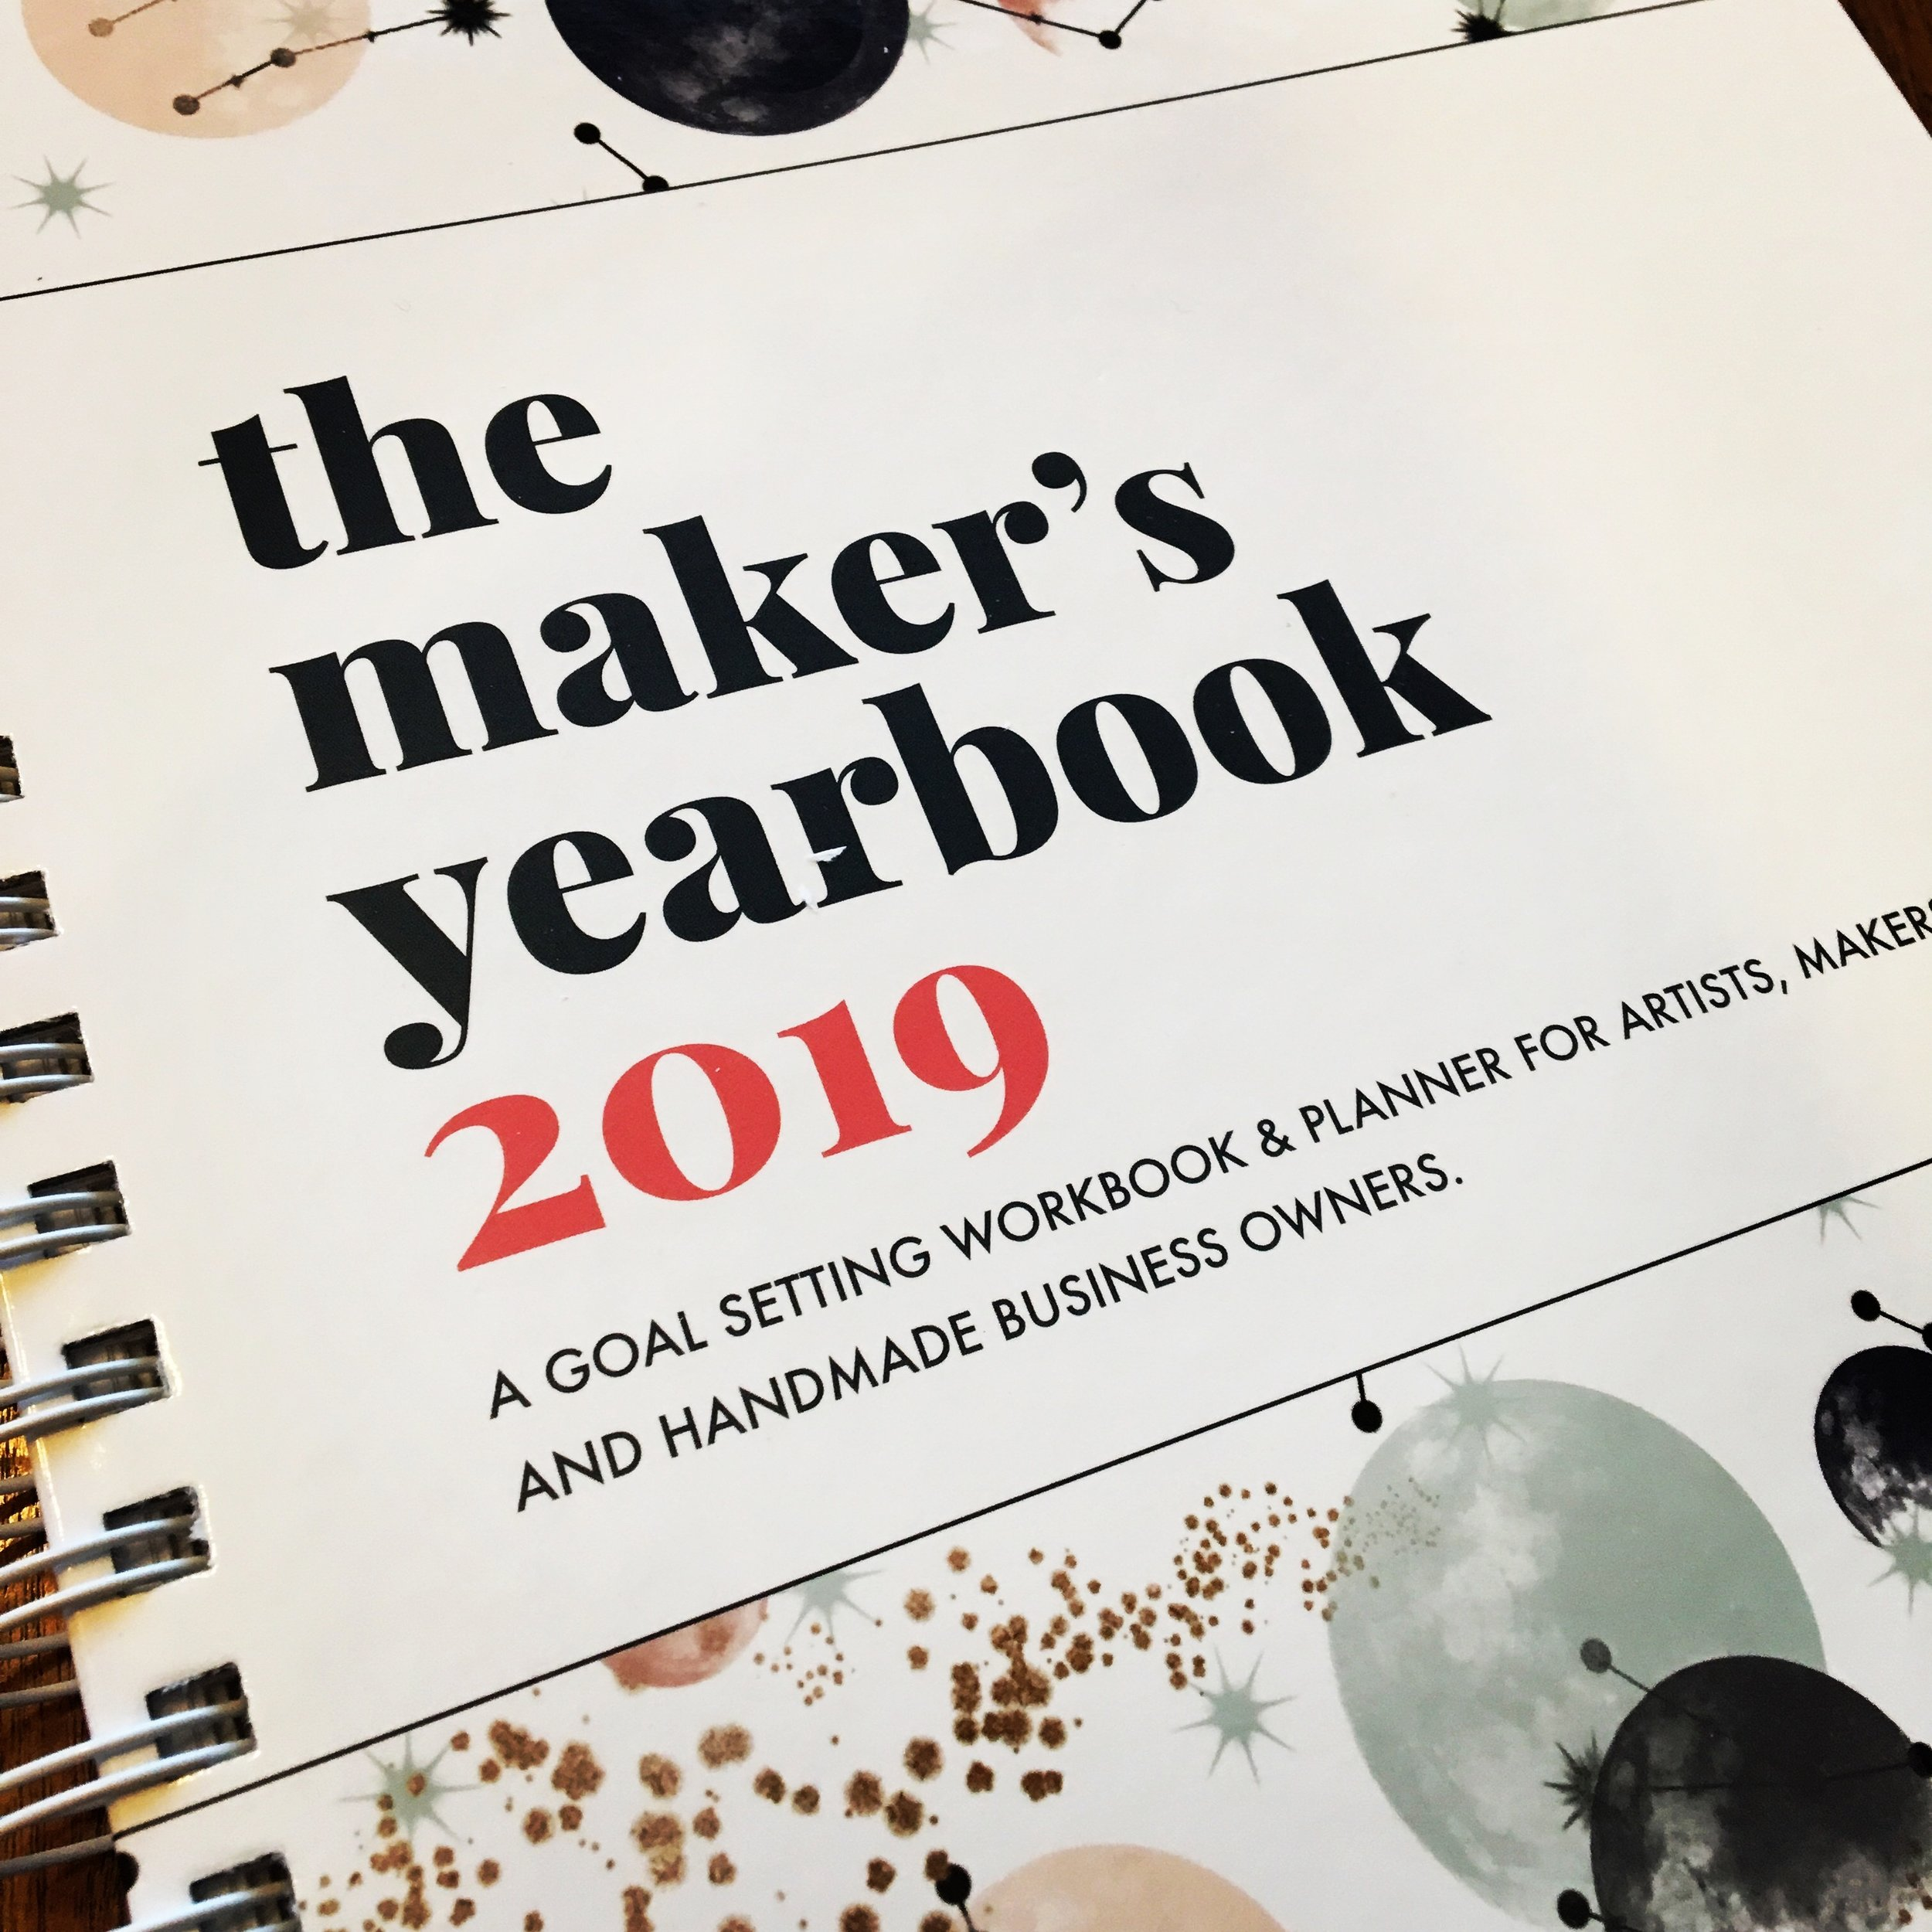 I'm loving planning using  The Maker's Yearbook 2019 ! It's a great planner for anyone with a handmade business.